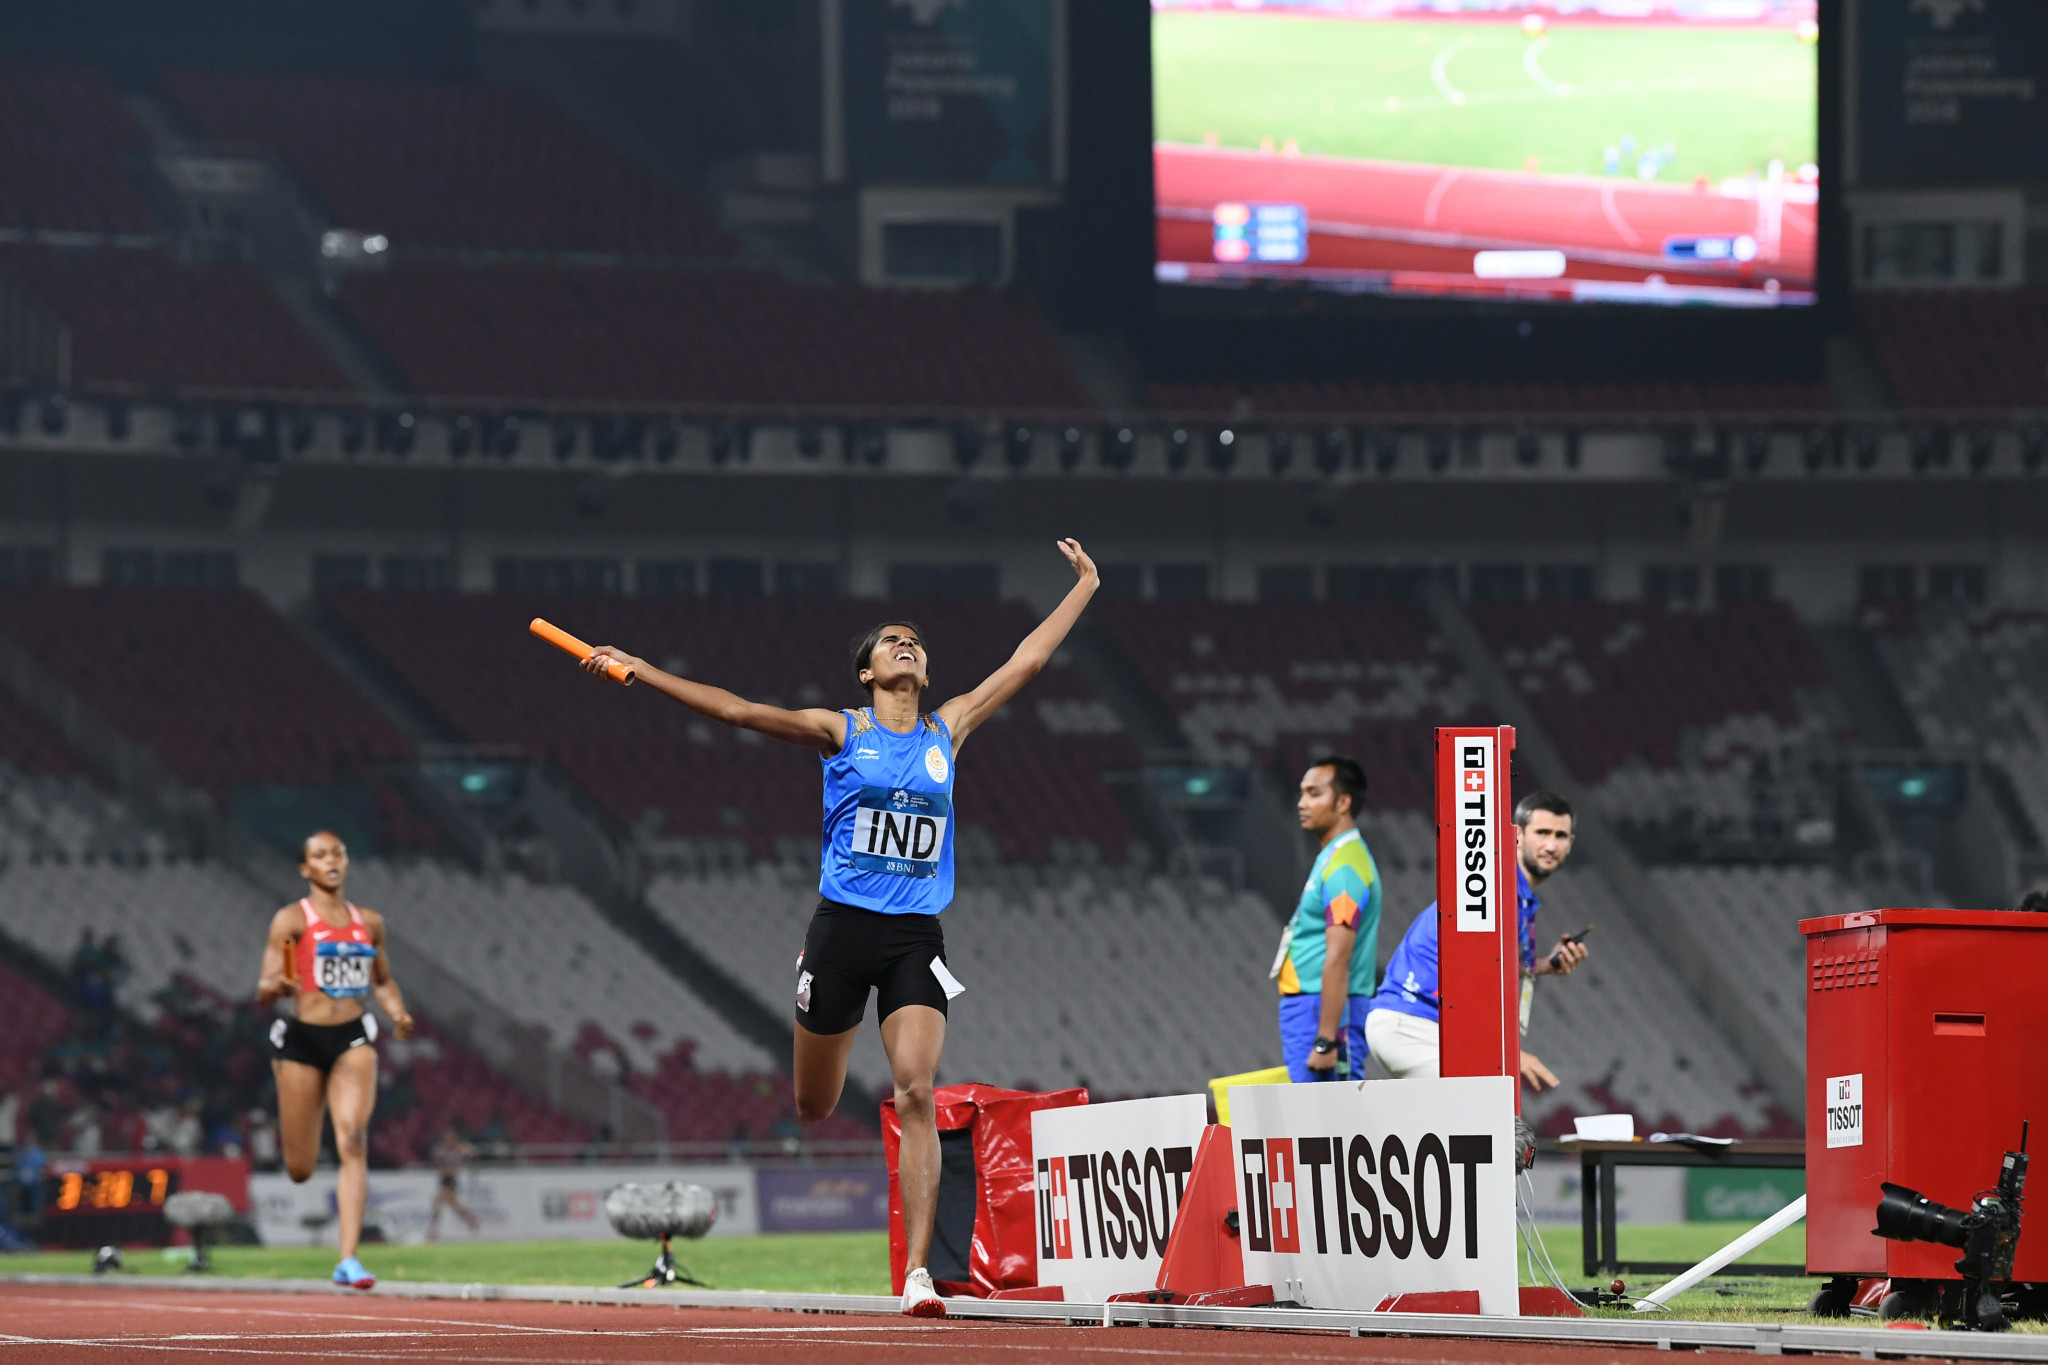 India has not earned an Olympic medal in athletics since 1900, but performed well in the sport at the 2018 Asian Games ©Getty Images